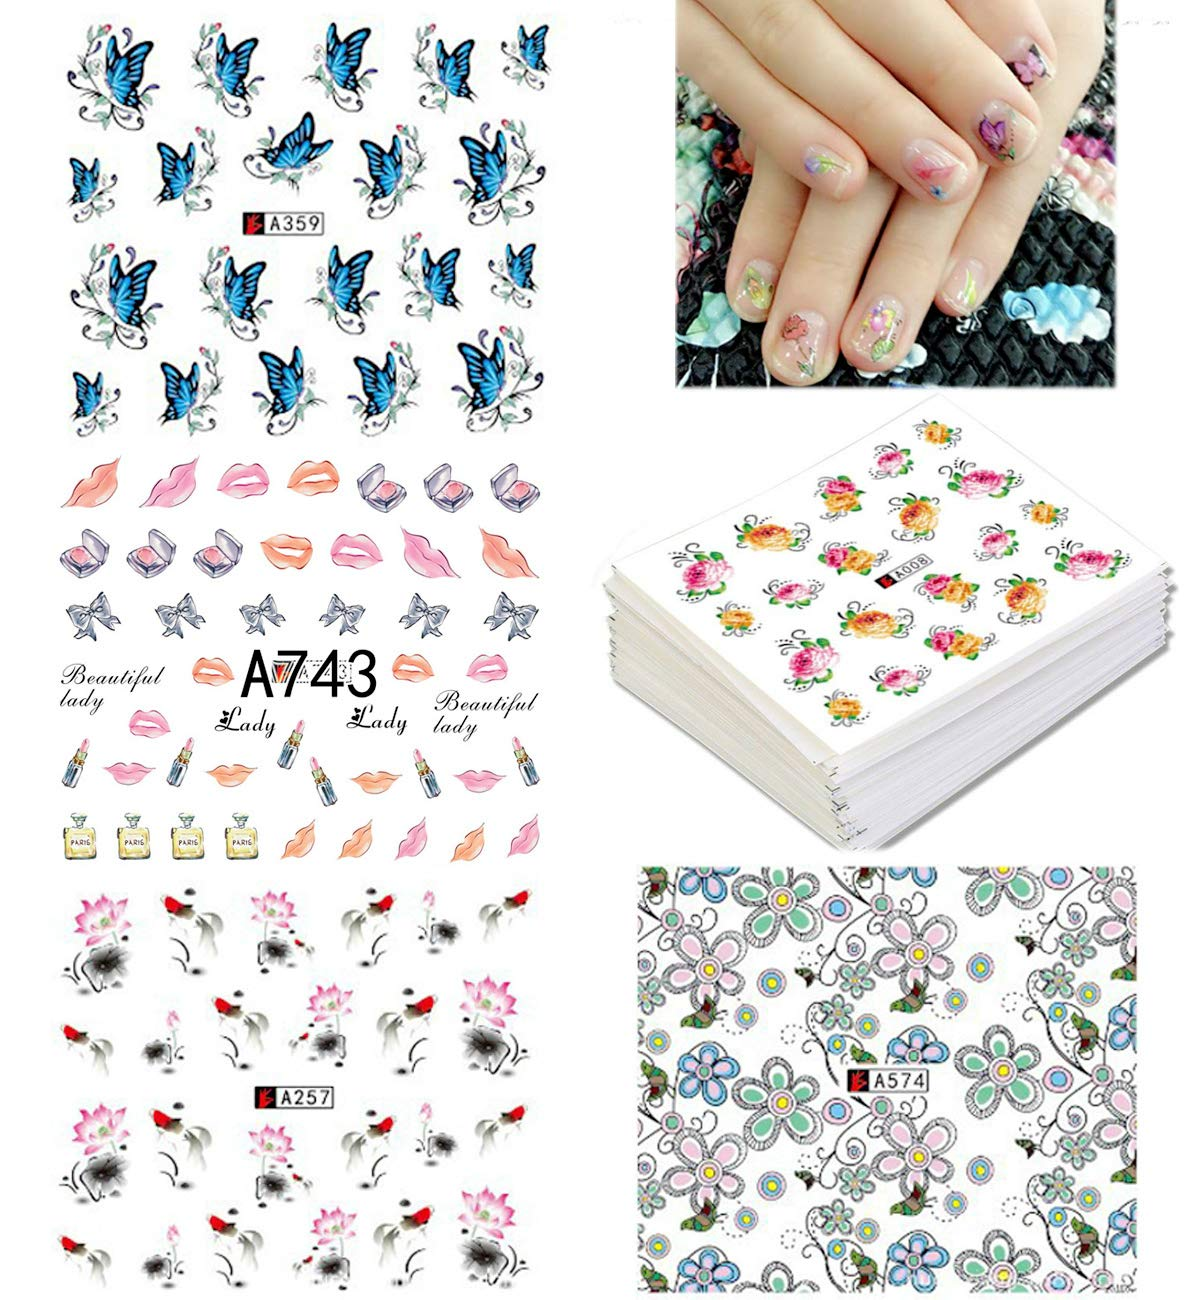 50 Sheets Nail Stickers,Nail Art Water Transfer Sticker Decal-butterfly, flower, heart,DIY Easy Nail Art Set for Finger or Toe Chic Decals,(different patterns)